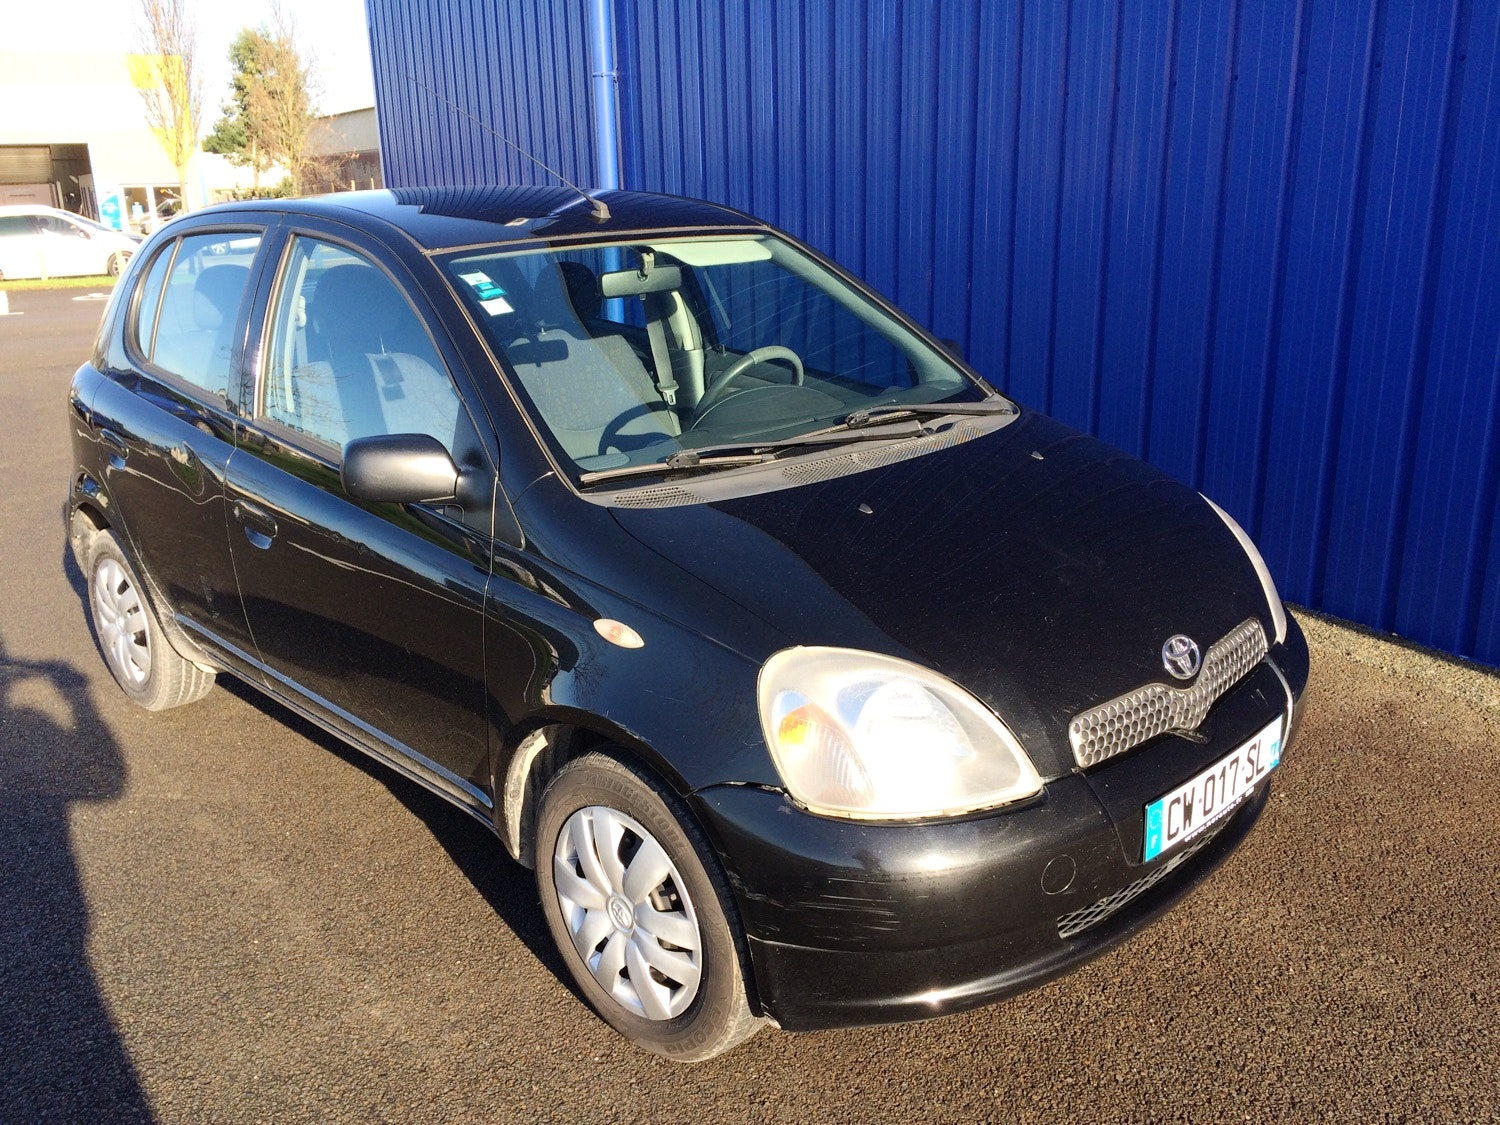 Toyota Yaris, 2003, Essence